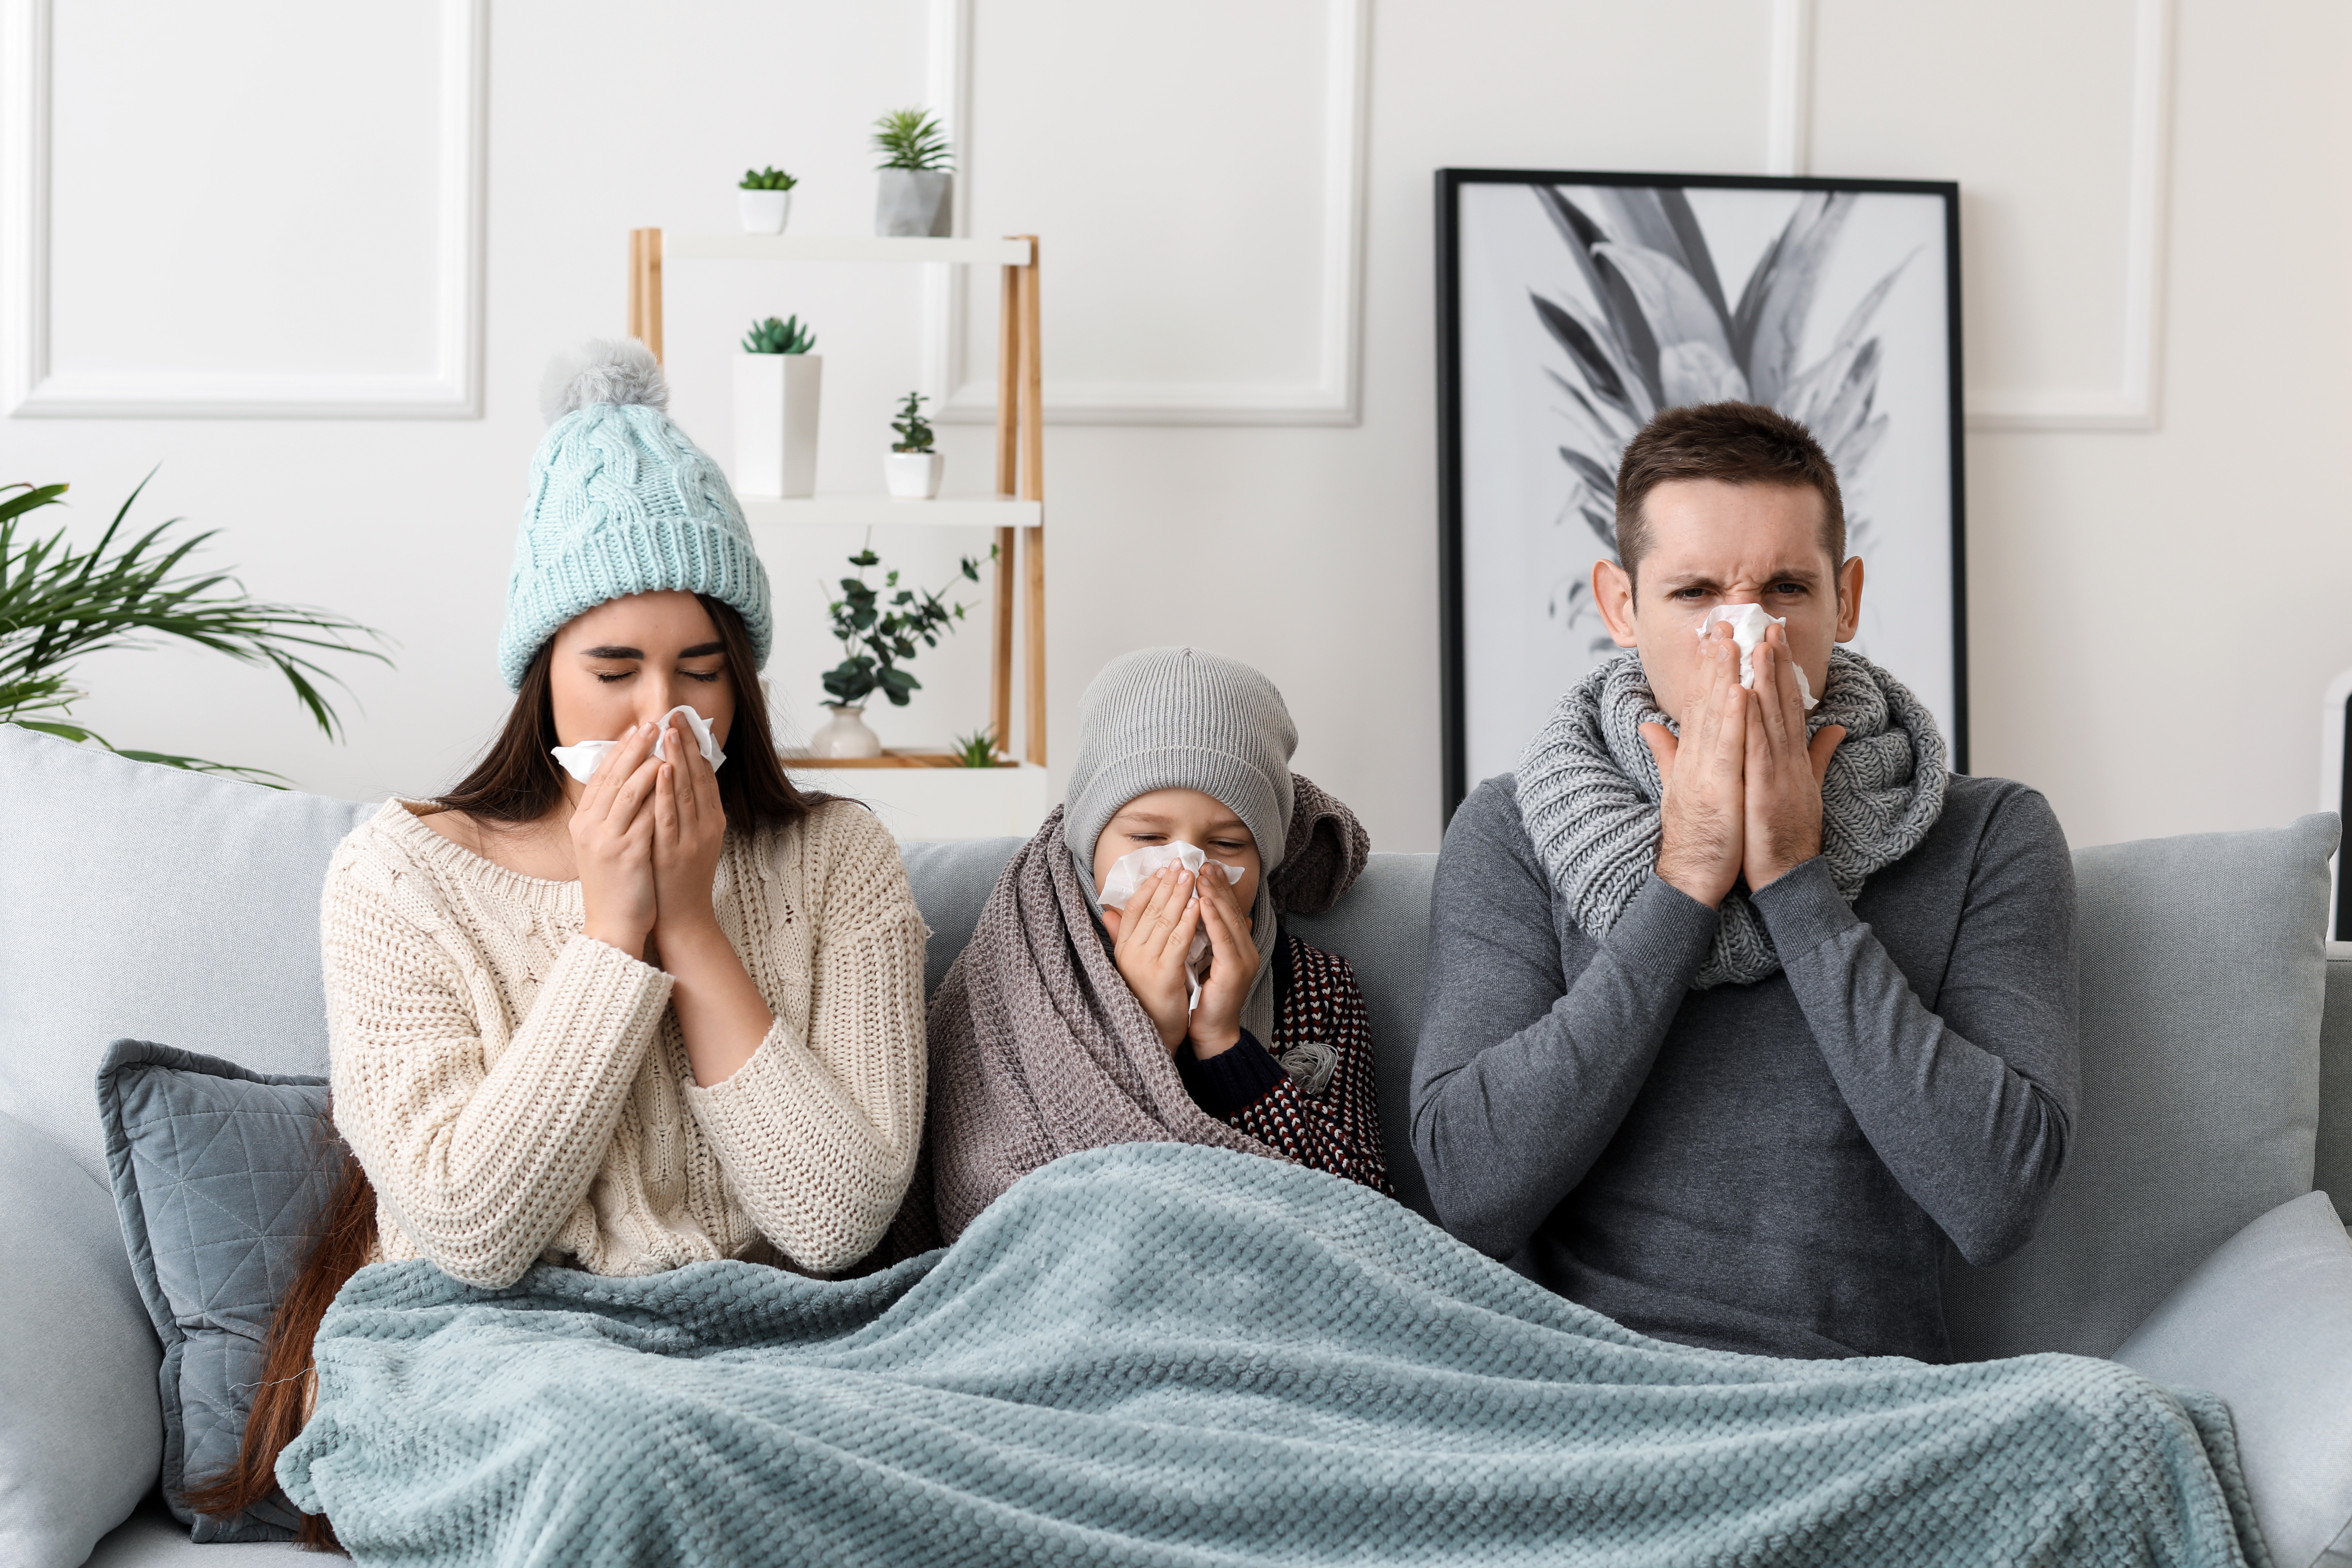 How Different Is The Covid 19 From The Common Flu?